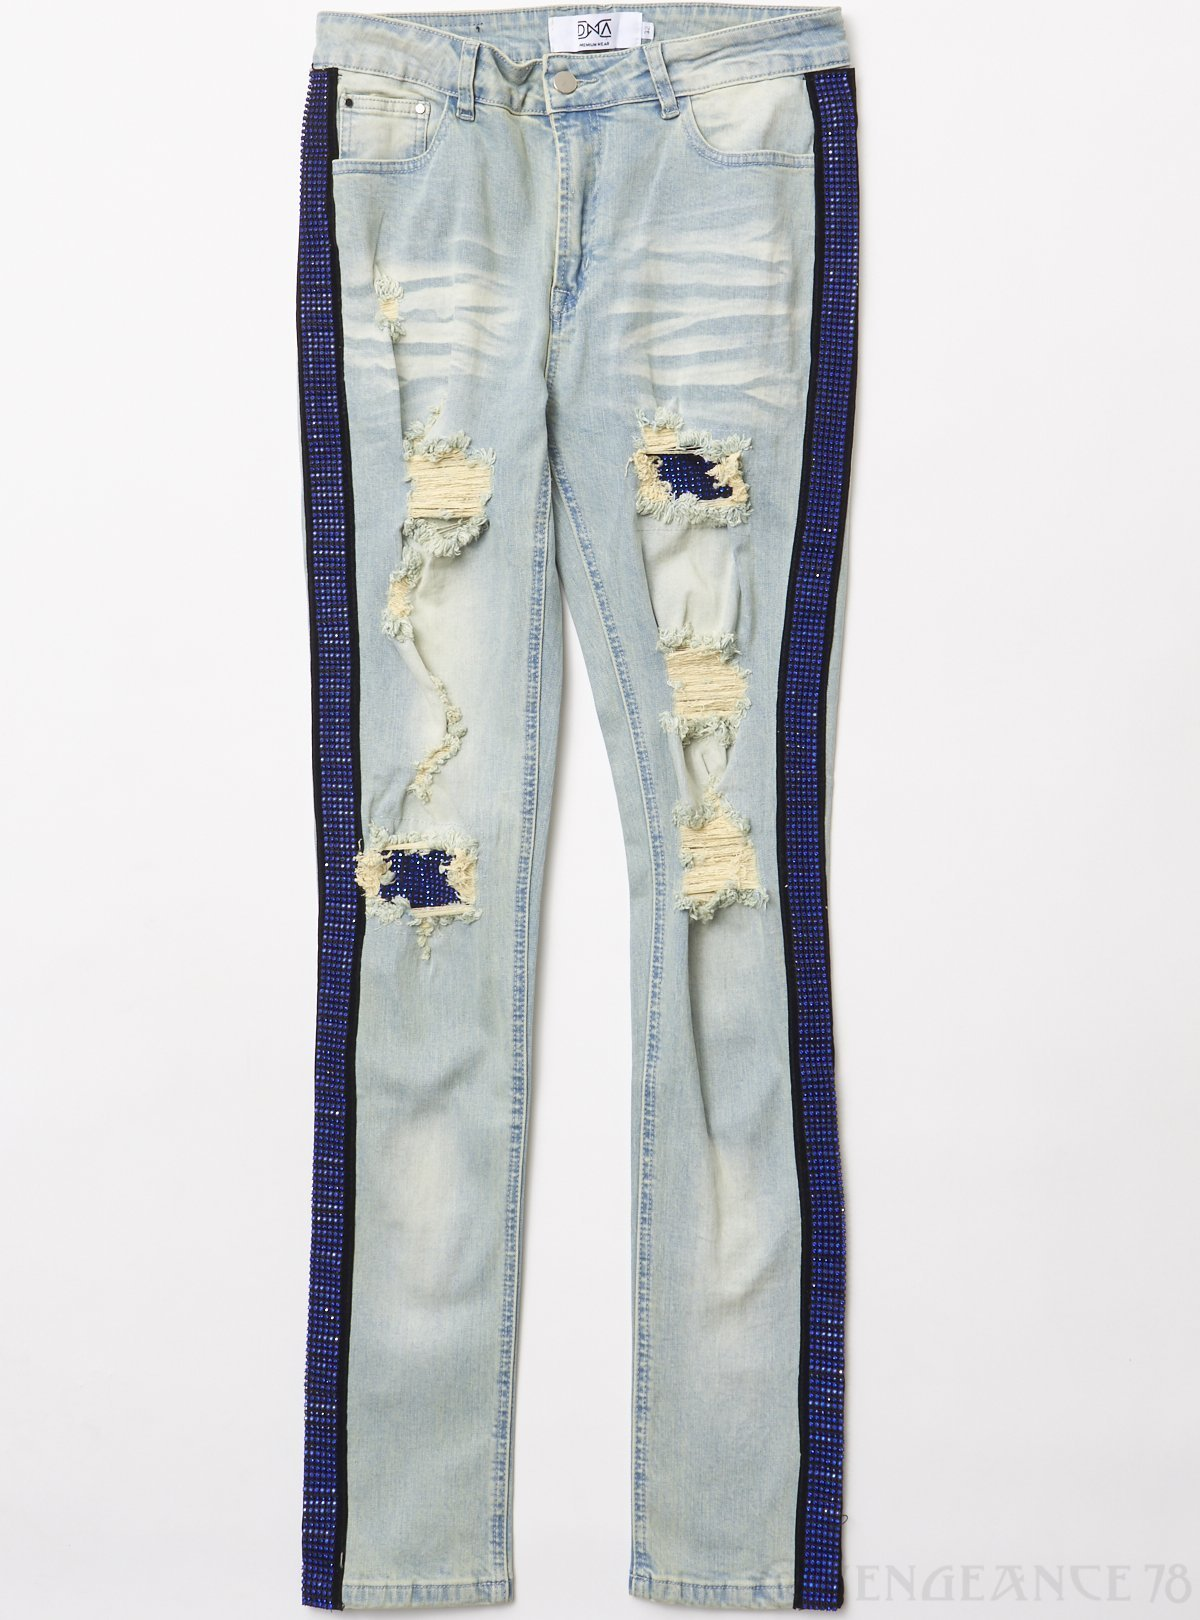 DNA Jeans - Side Stones - Light Blue And Royal